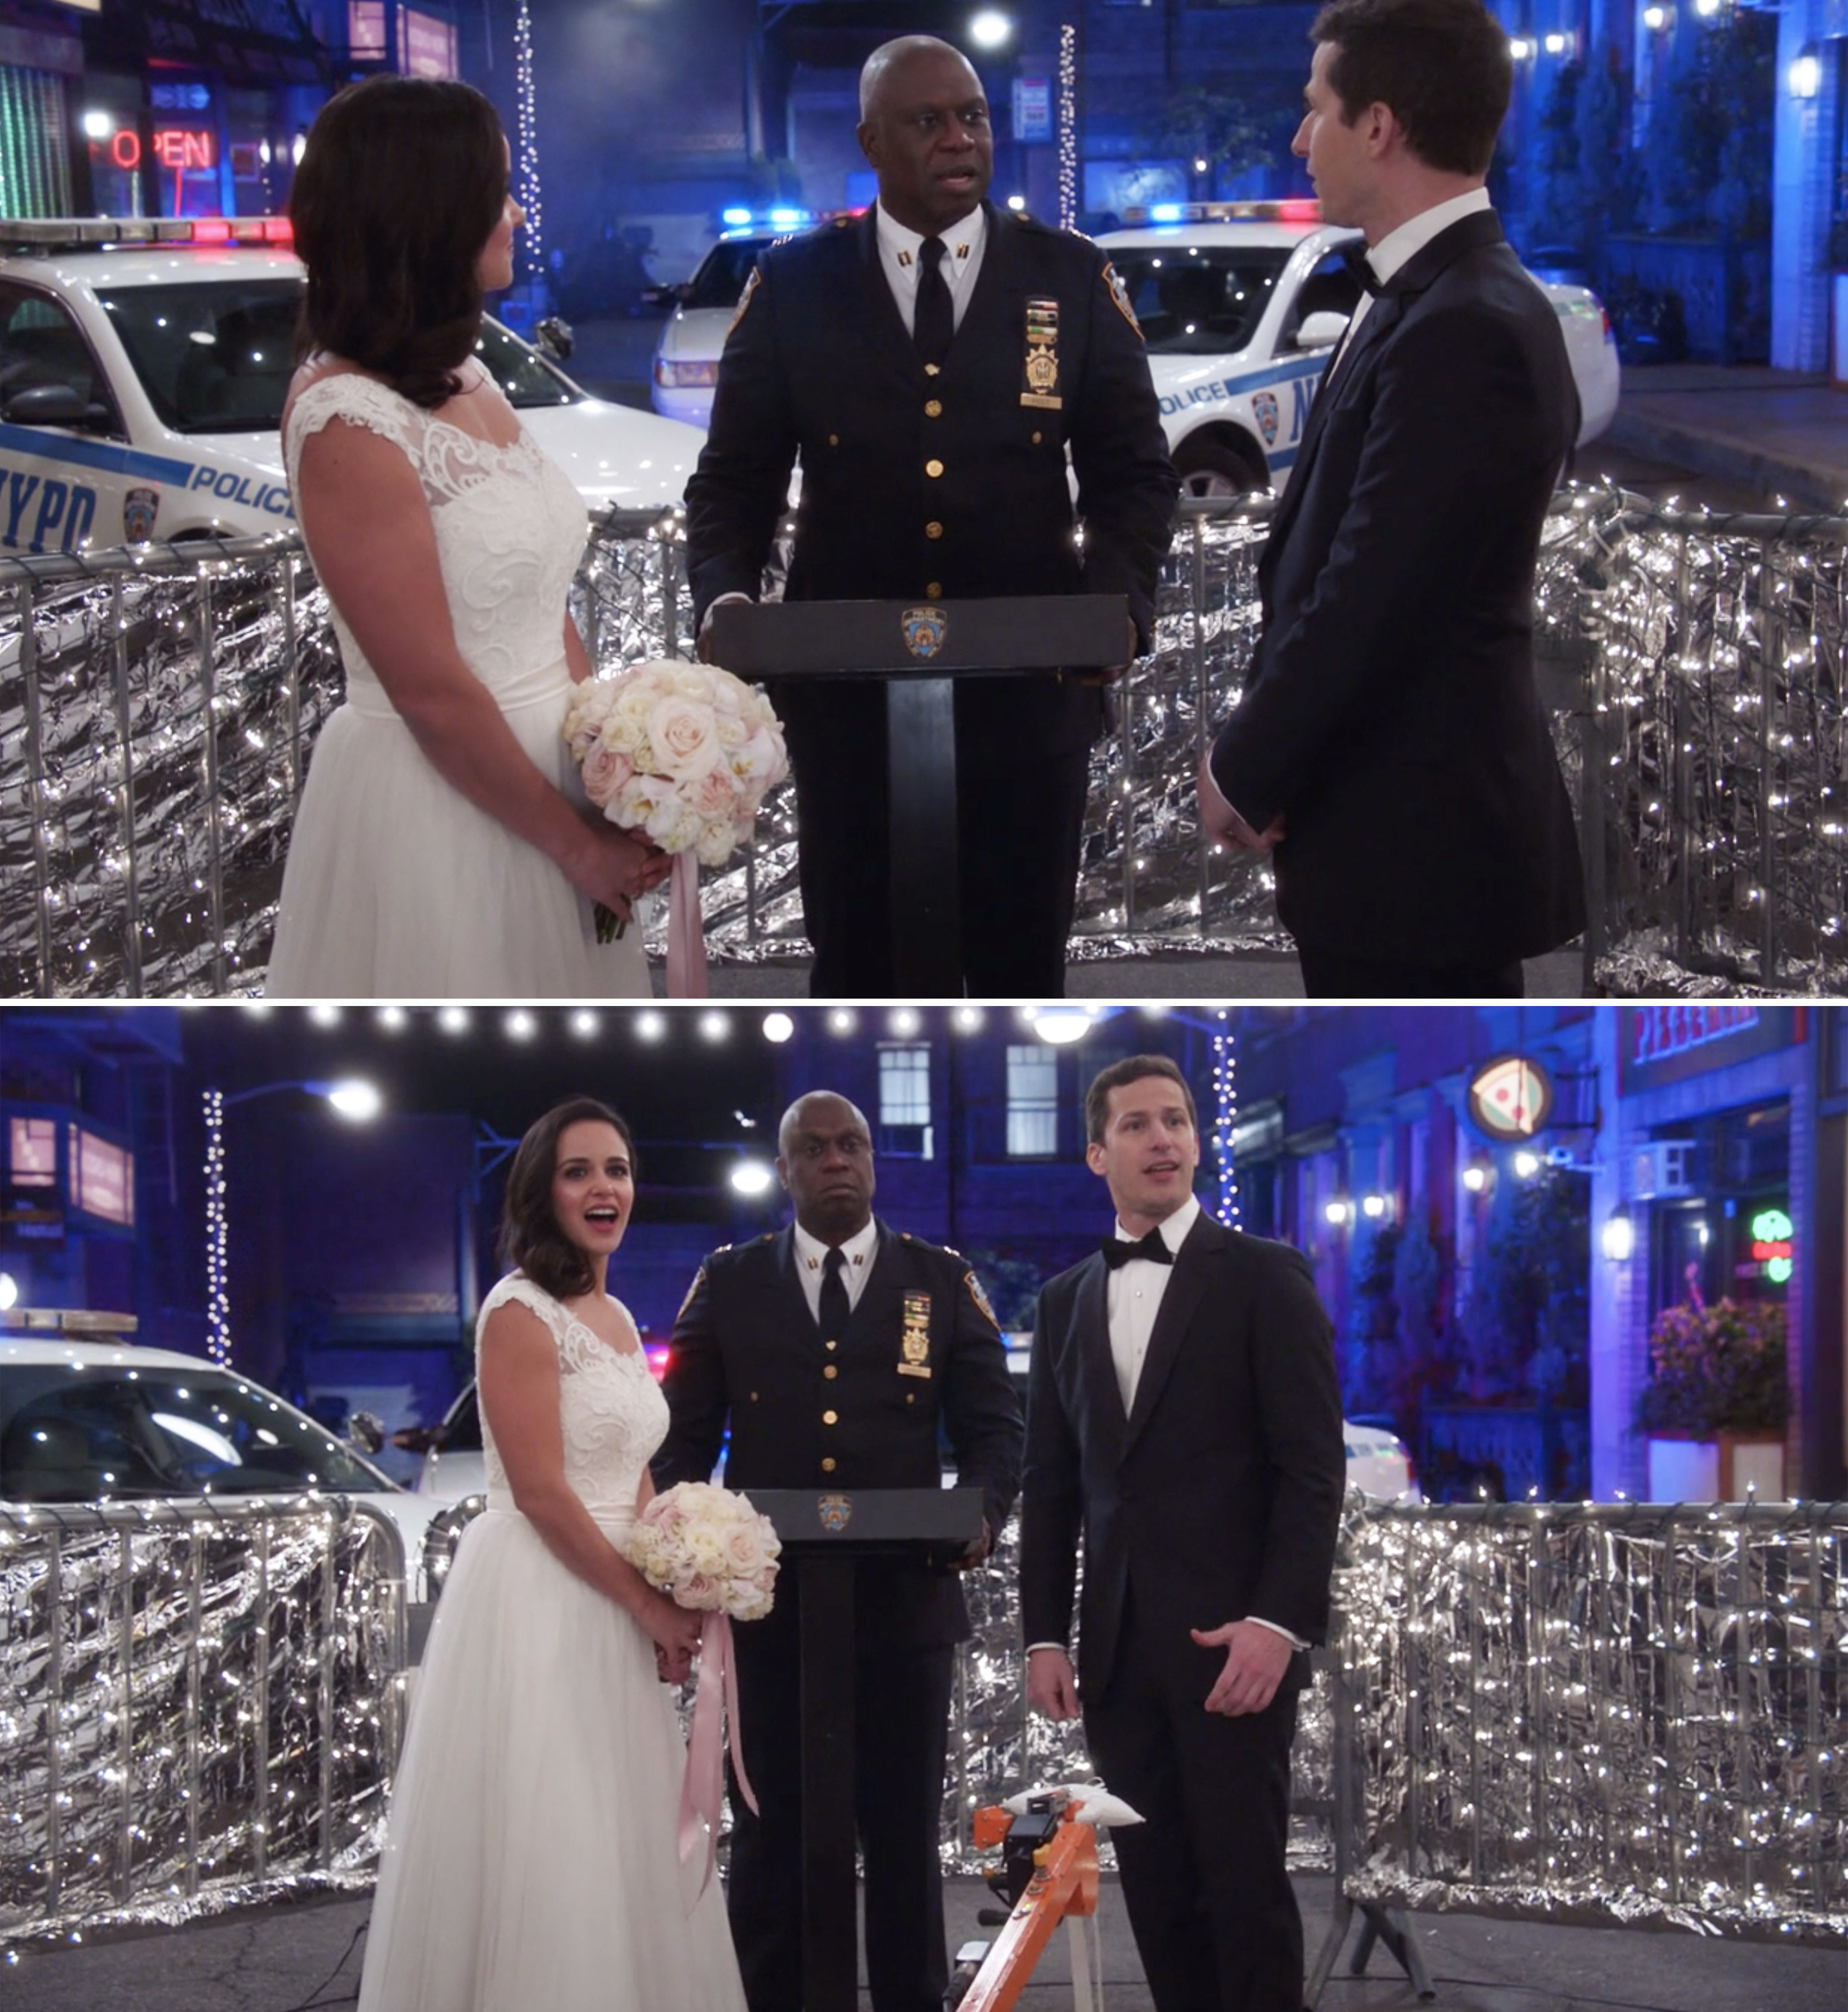 Jake and Amy getting married